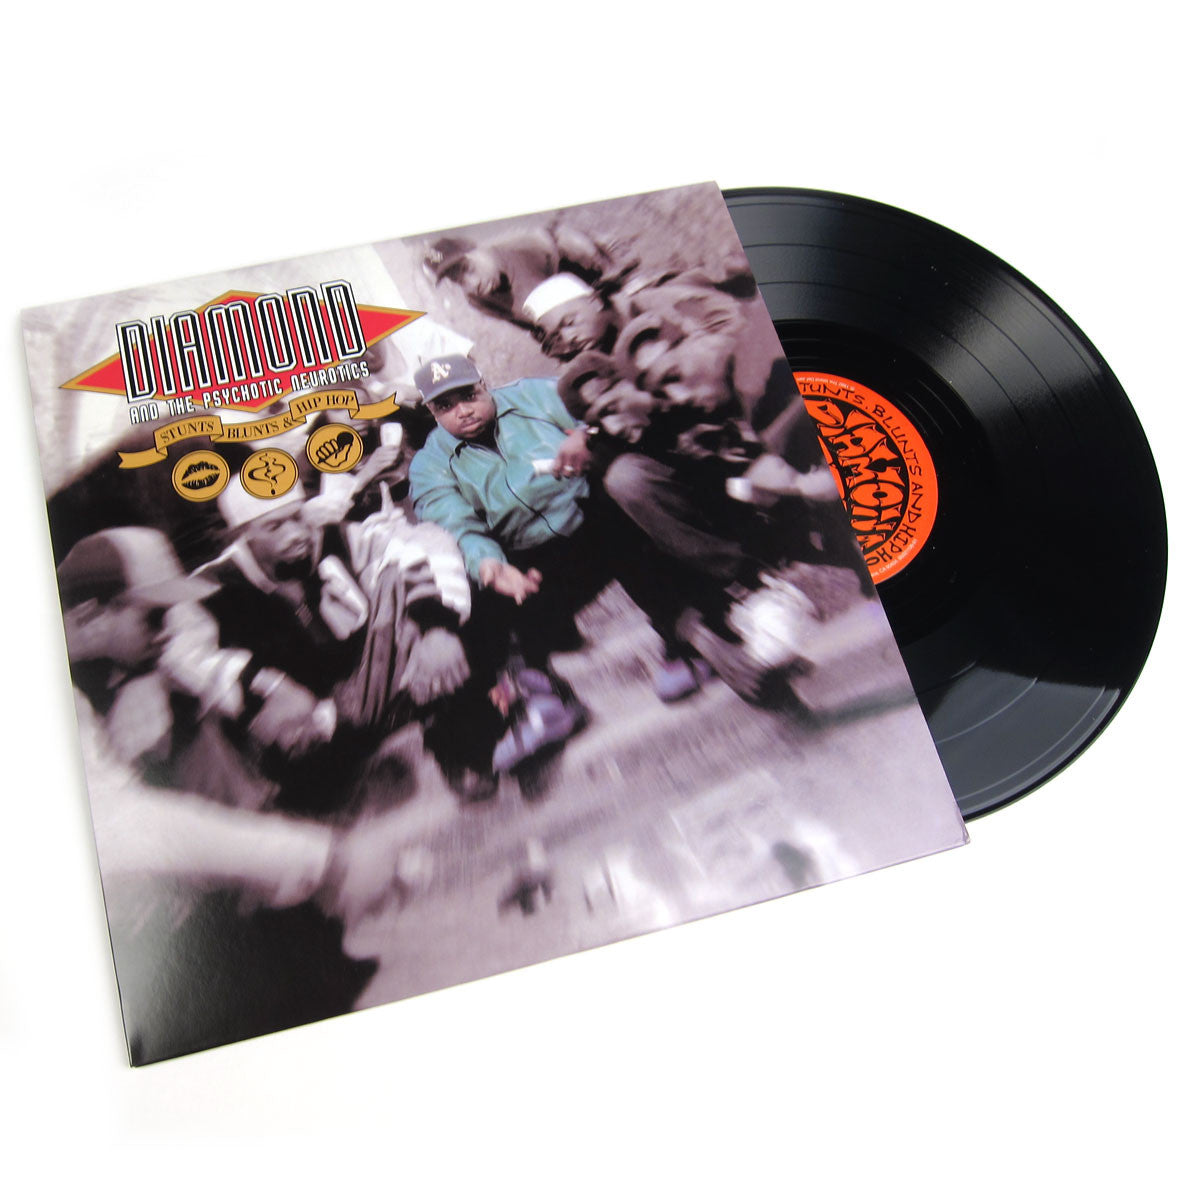 Diamond D & The Psychotic Neurotics: Stunts, Blunts and Hip Hop Vinyl 2LP